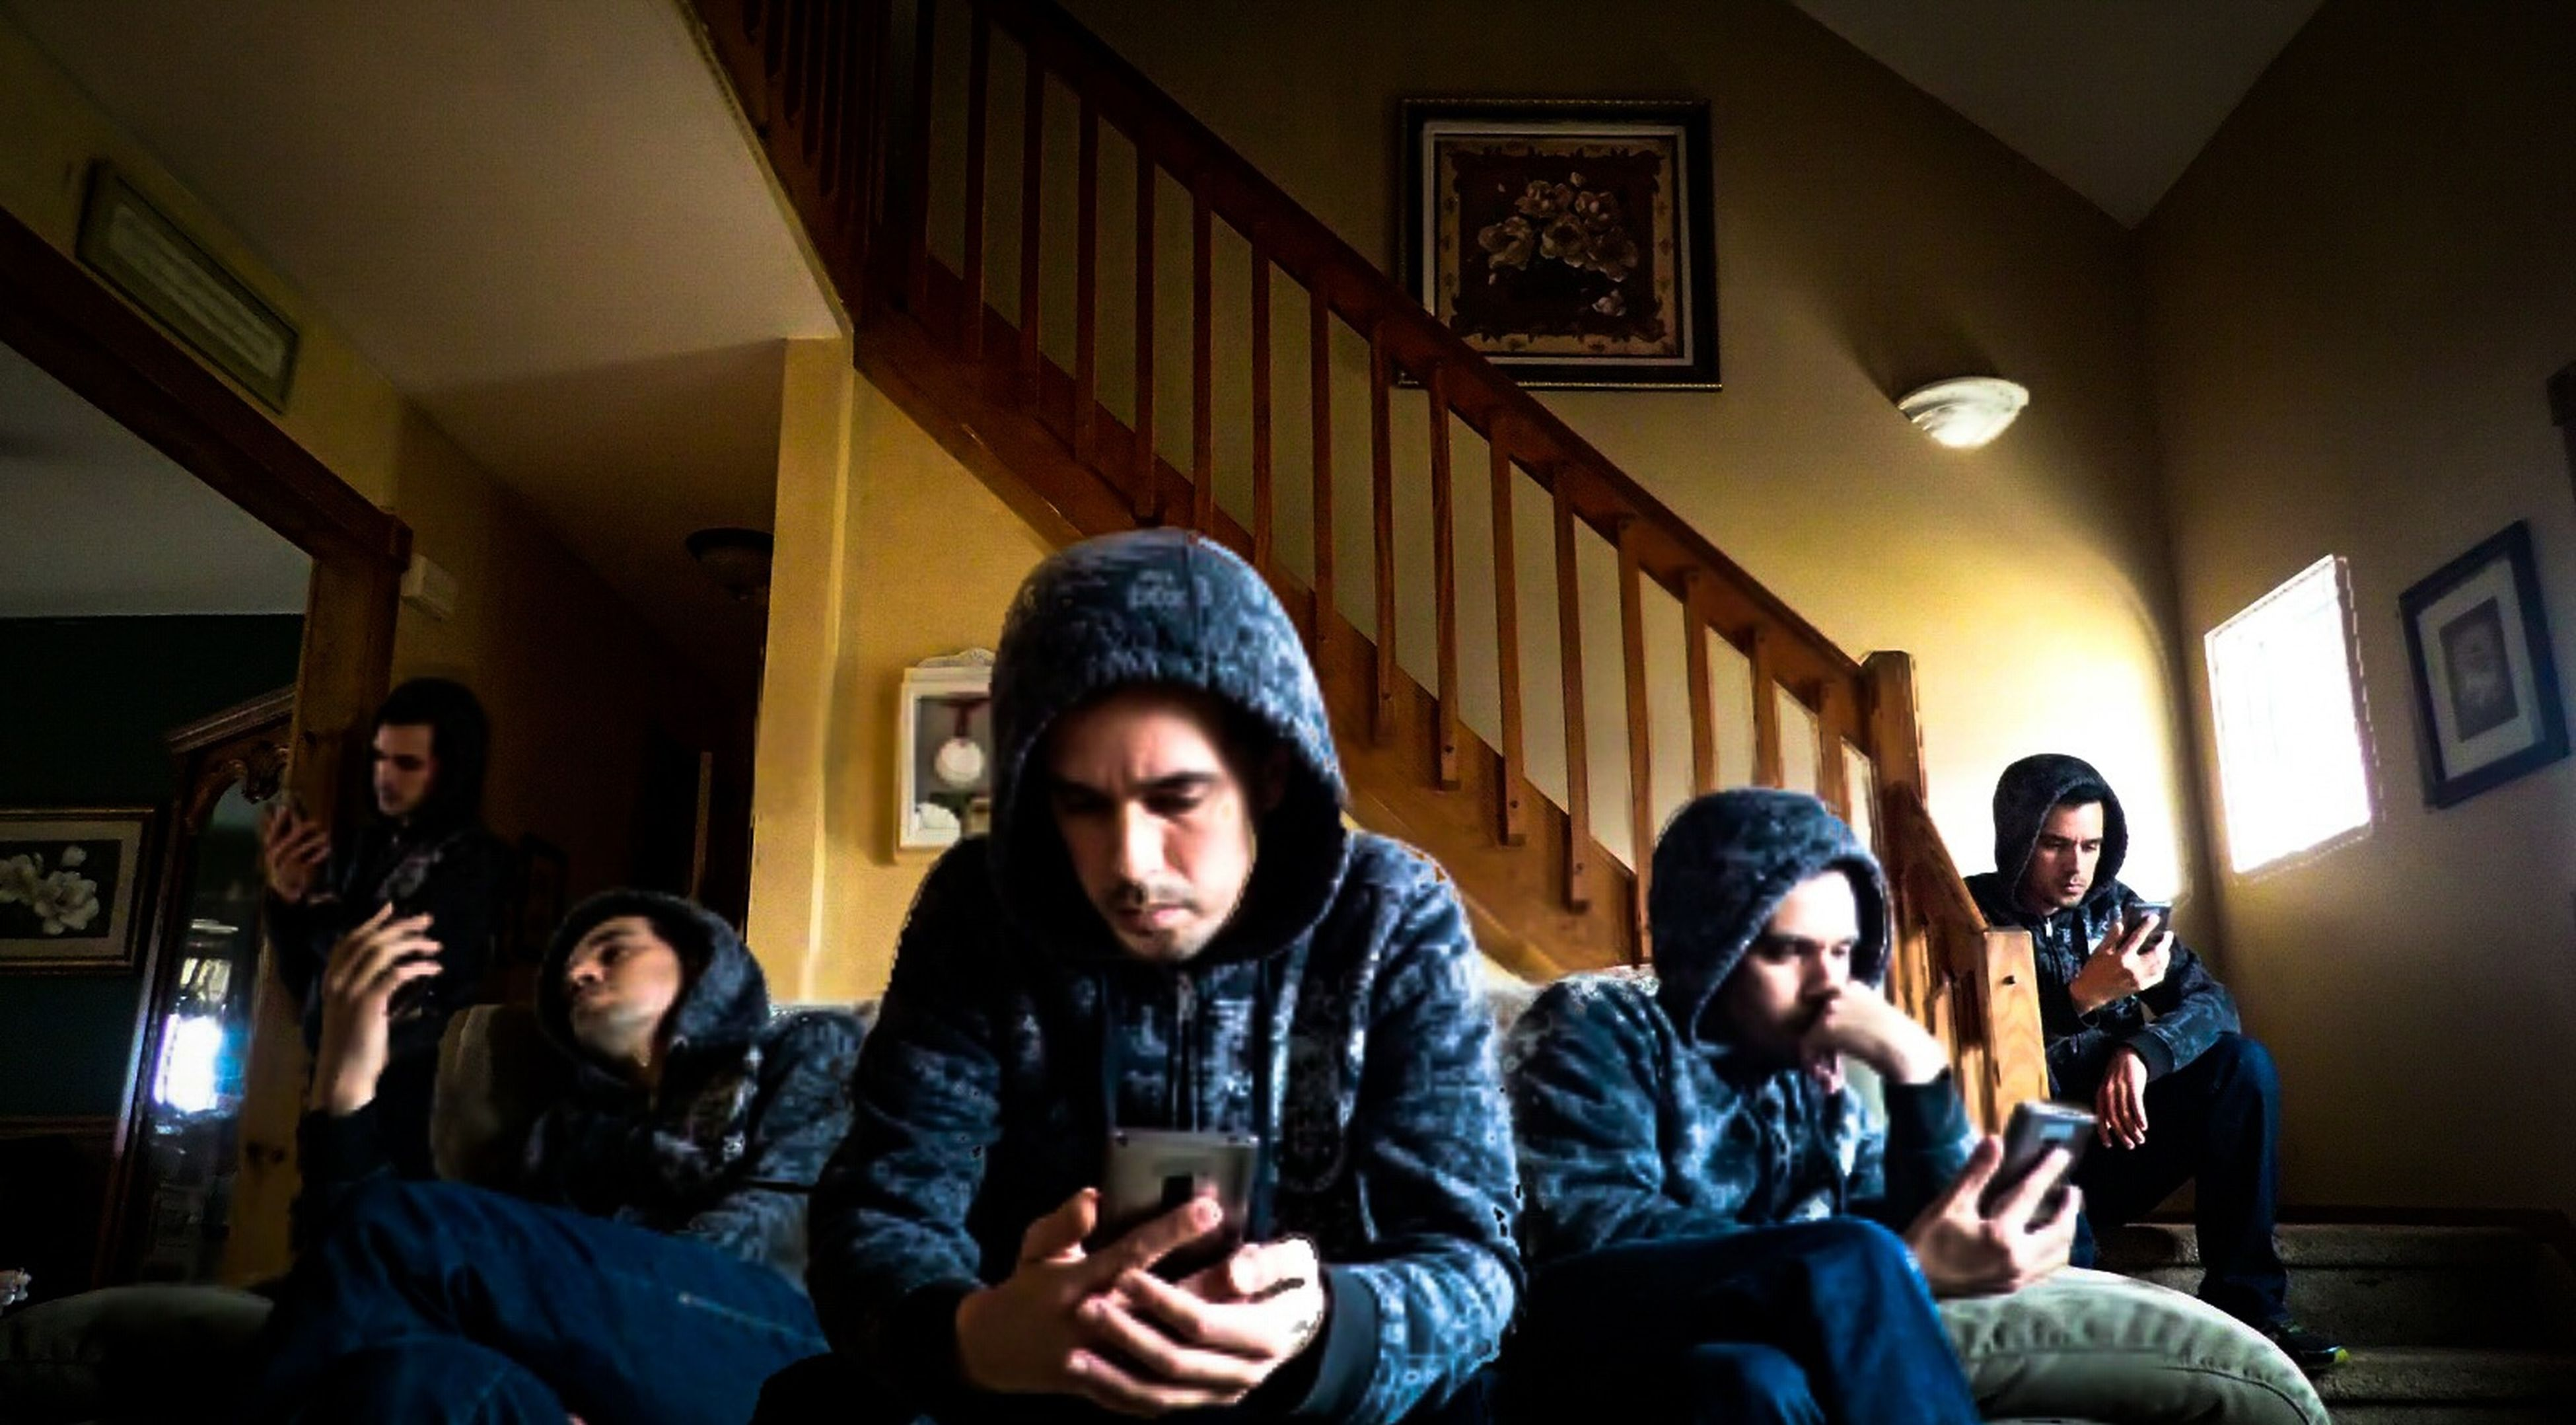 lifestyles, person, indoors, young men, young adult, portrait, looking at camera, leisure activity, casual clothing, smiling, happiness, front view, togetherness, bonding, mid adult men